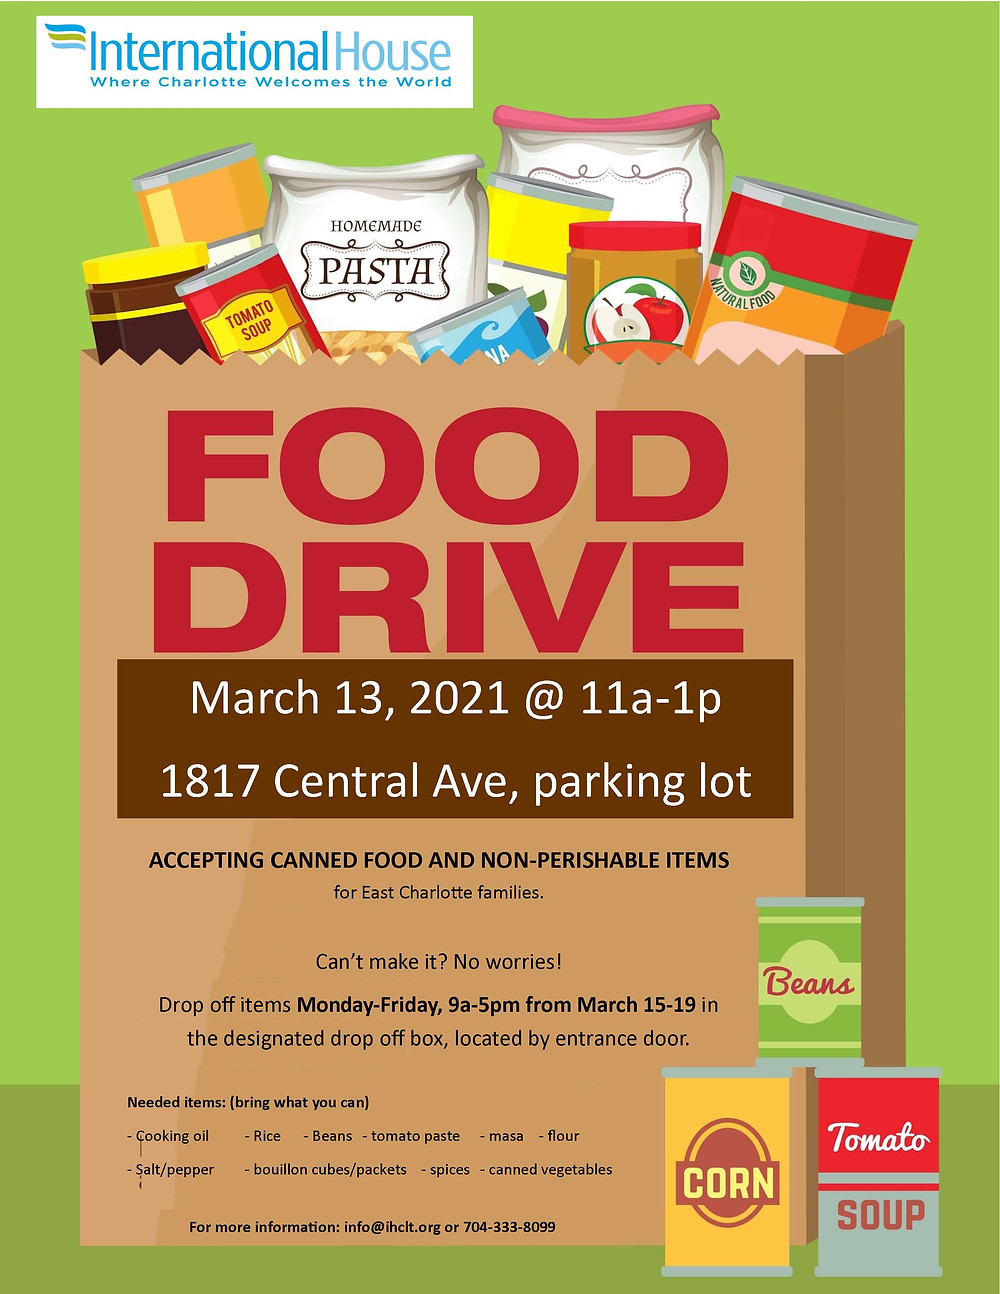 International House Food Drive March 13, 2021